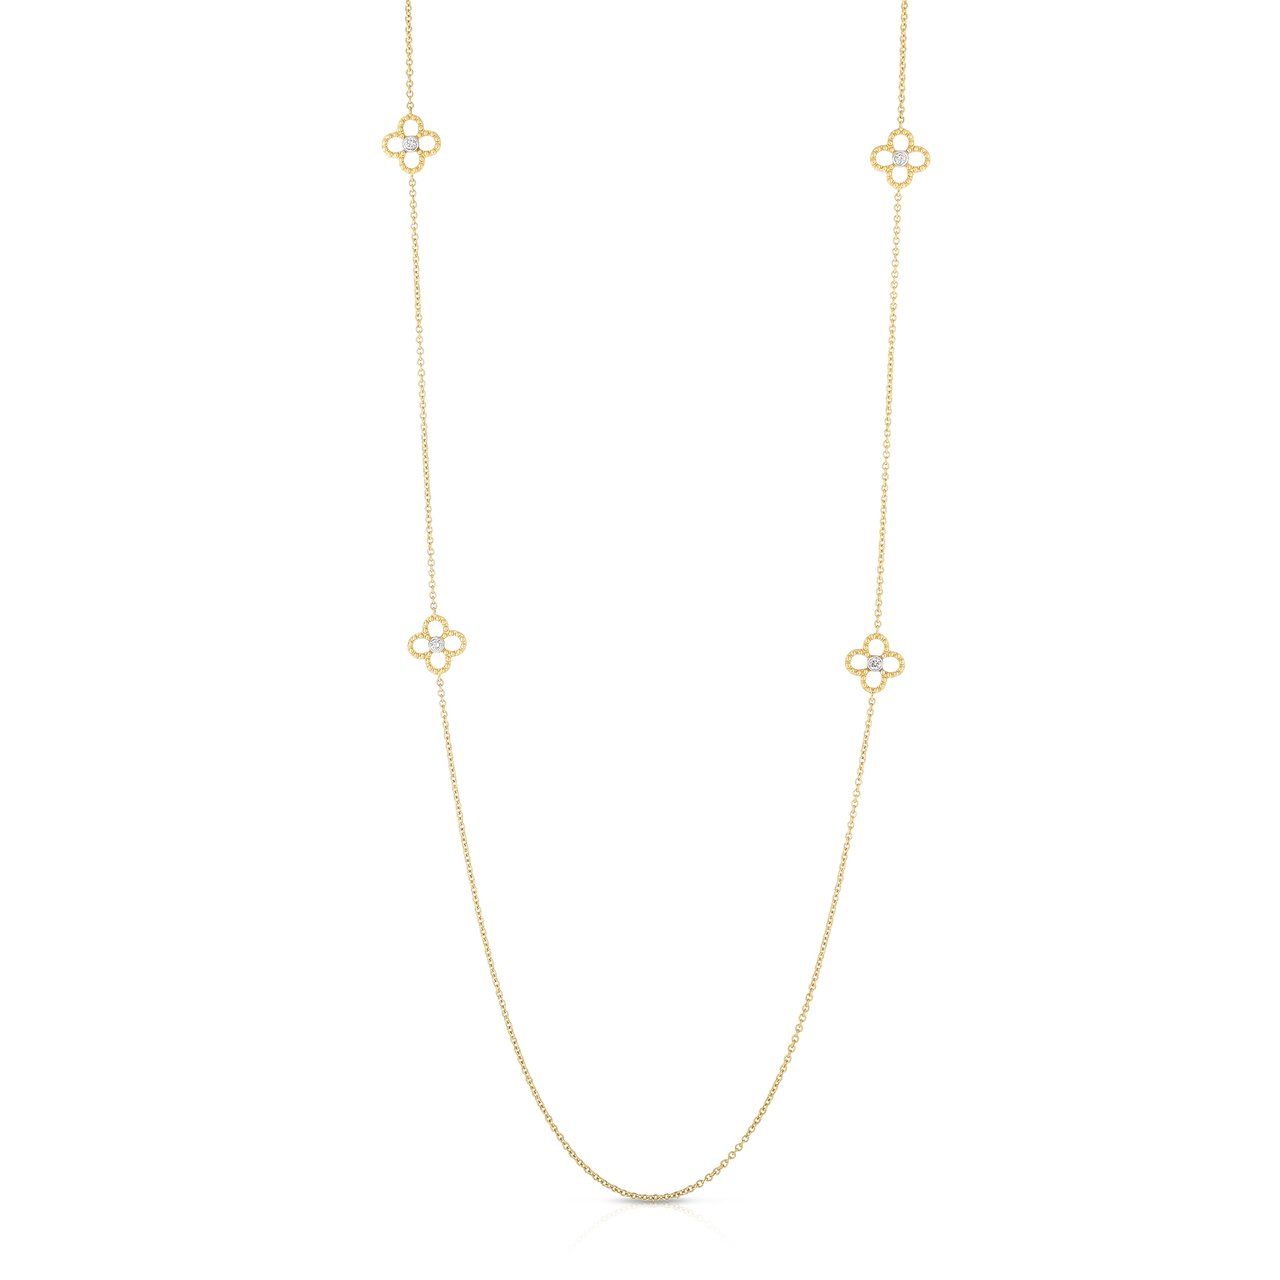 Sabel Collection 14K Yellow Gold 10 Diamond Station Necklace